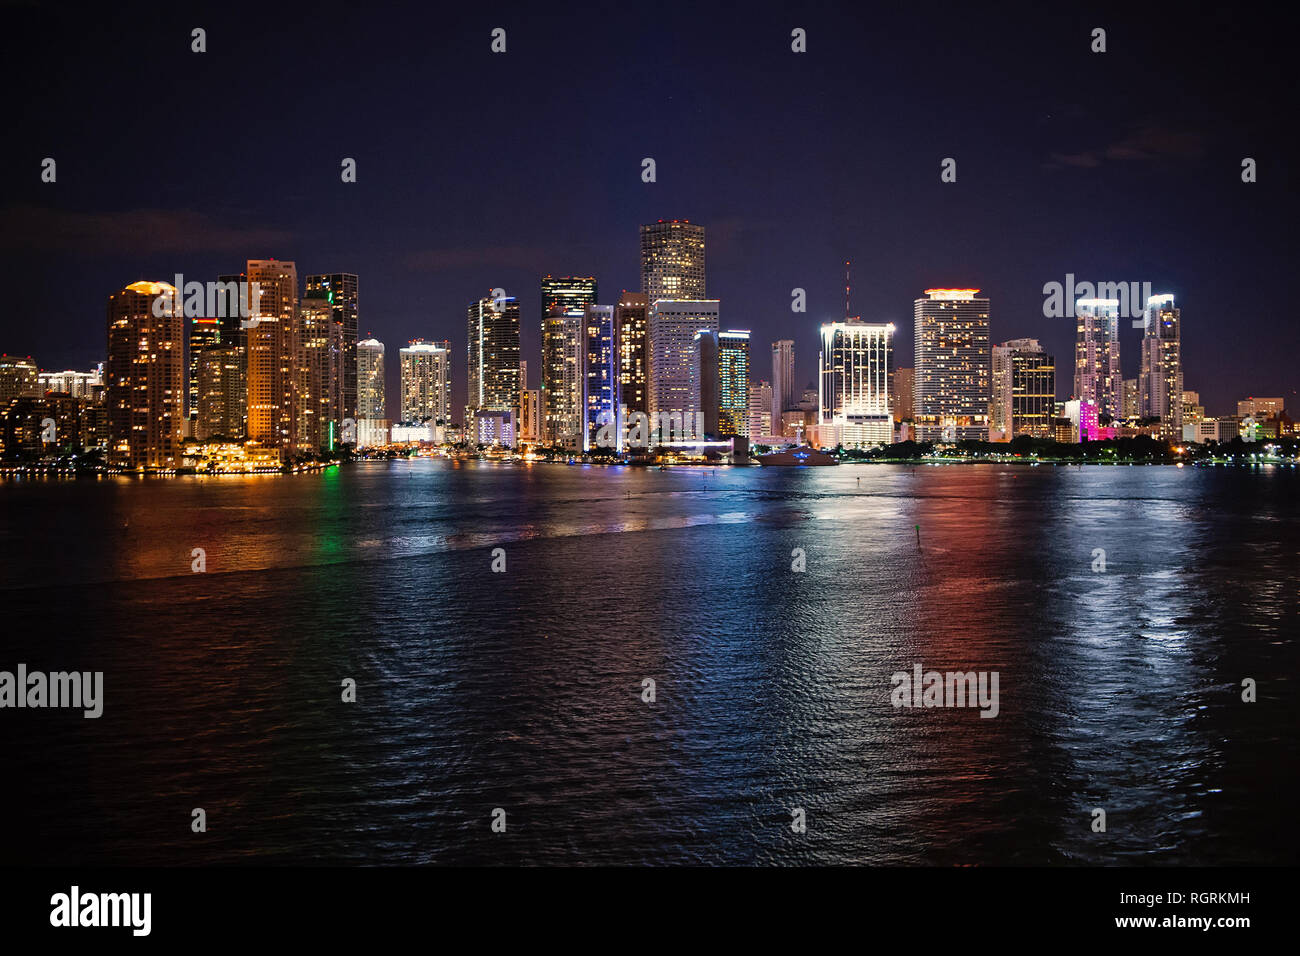 Miami city skyline panorama at night, usa. Skyscrapers illumination reflect on sea water in dusk. Architecture, structure, design. Building, construction, development. Wanderlust travel discovery - Stock Image